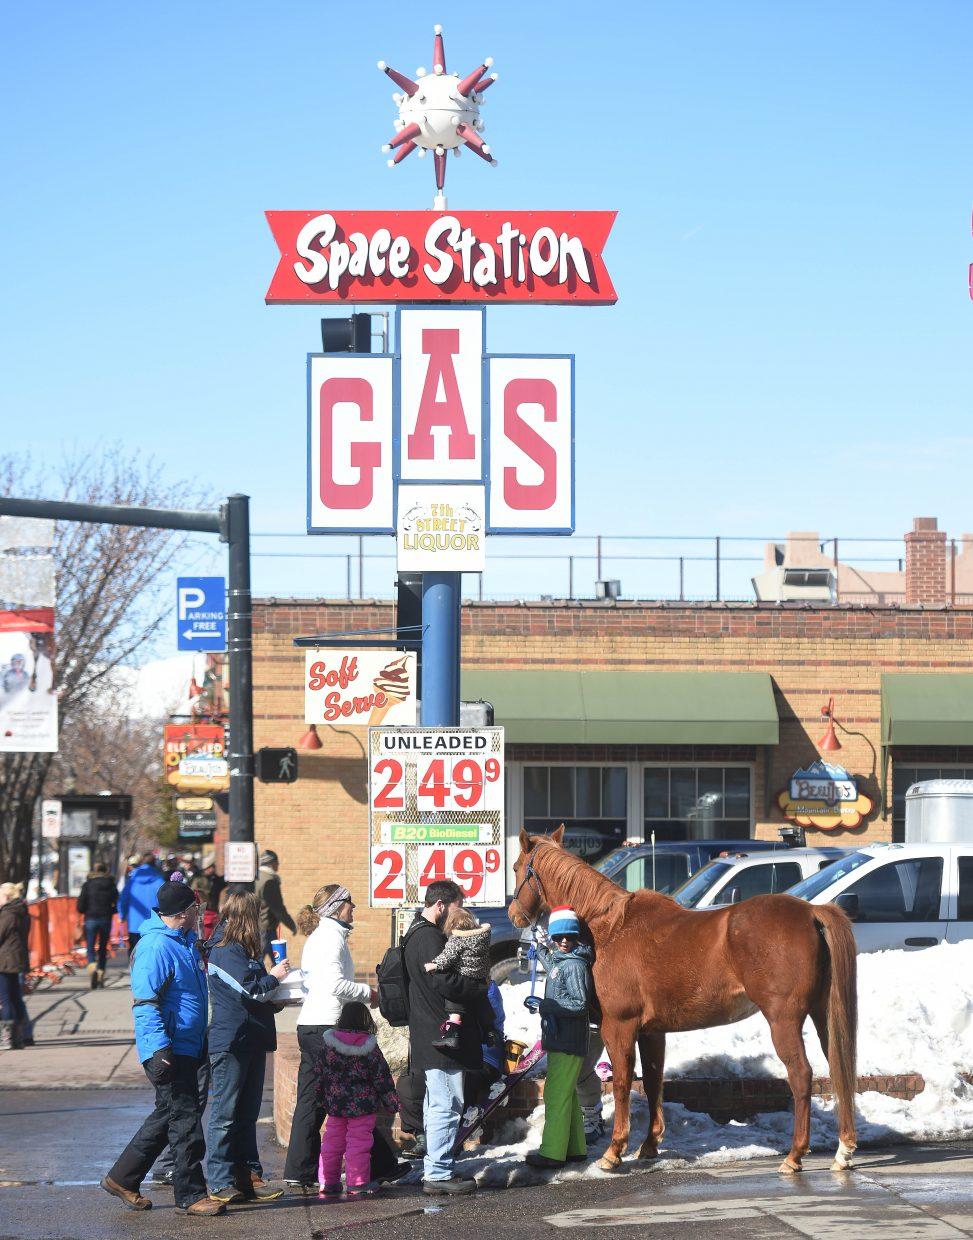 The Old West meets the Space Station in downtown Steamboat Springs after the morning's street events at Winter Carnival.